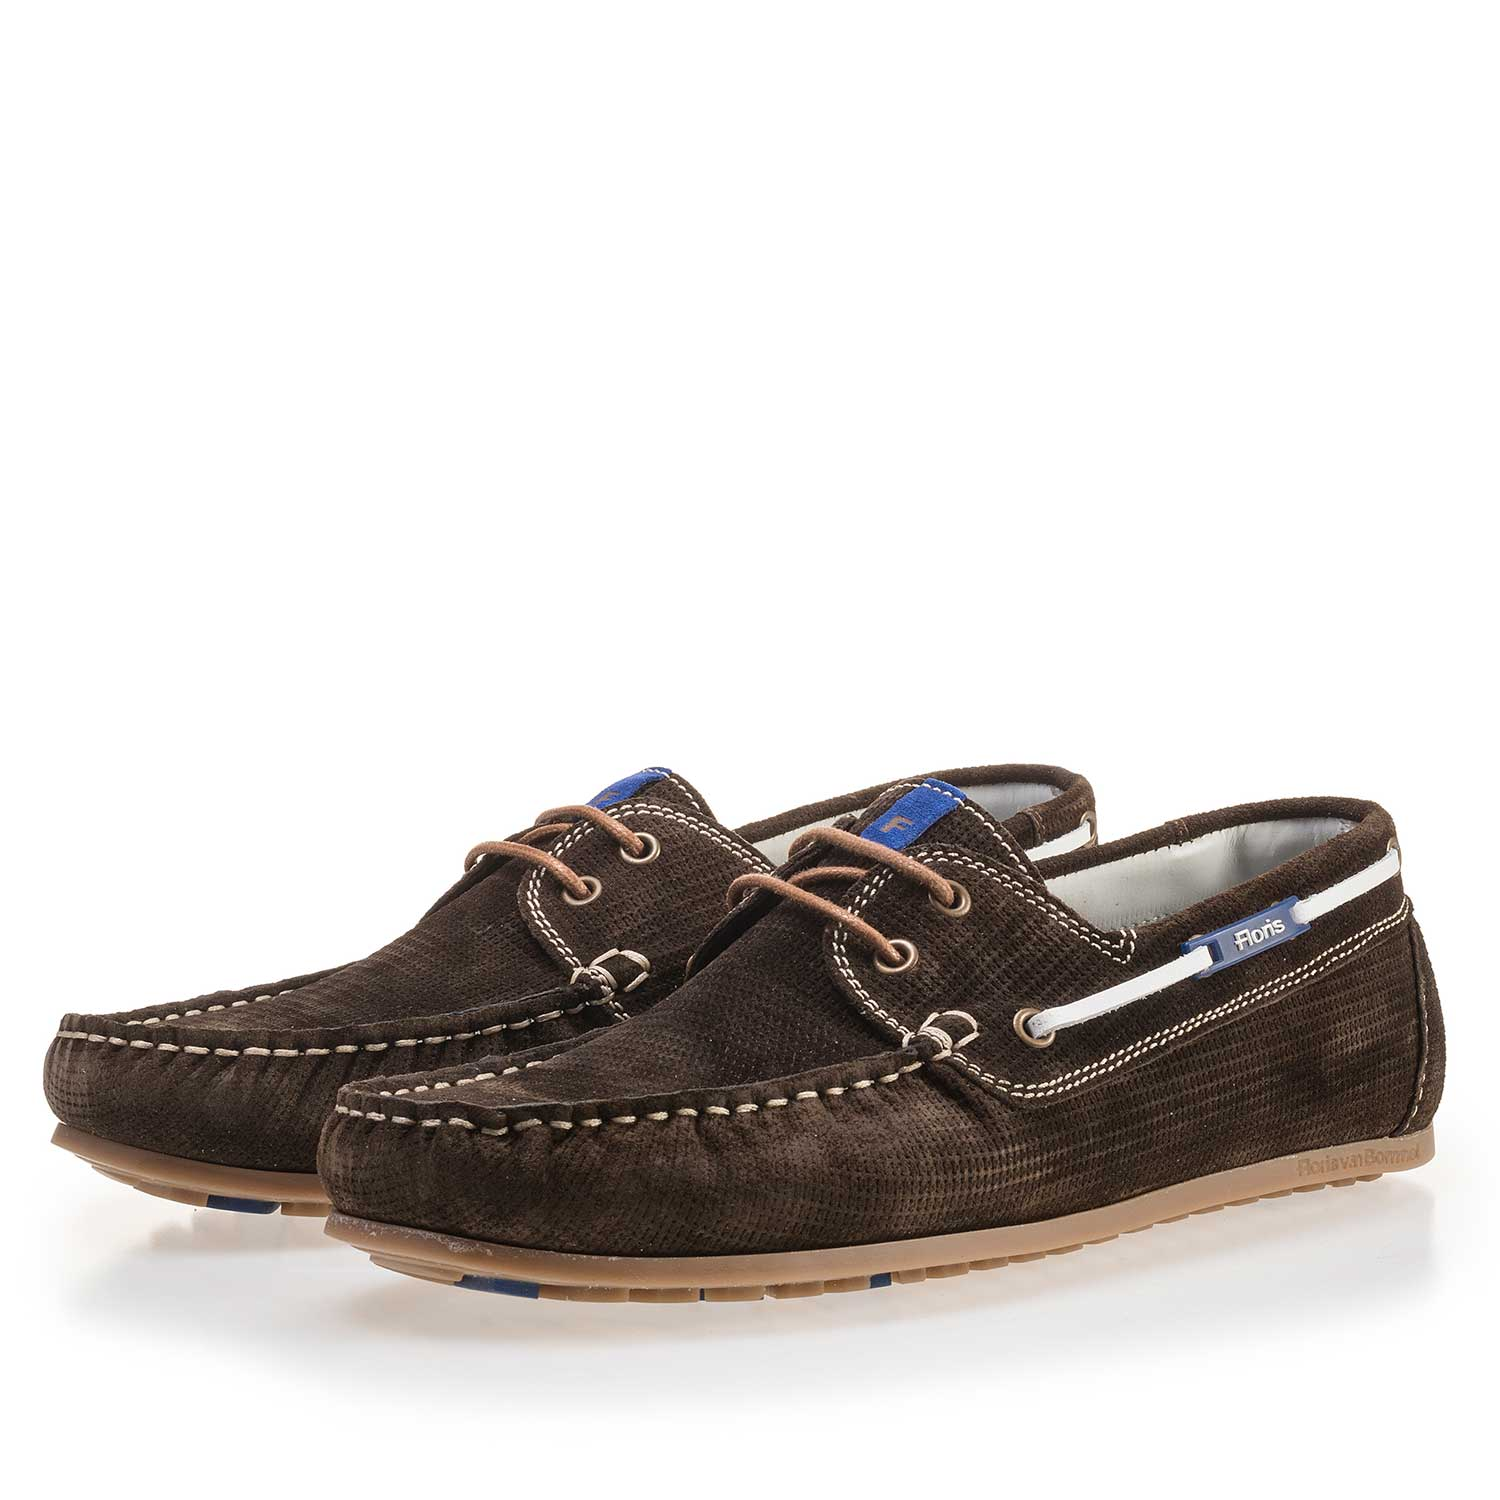 15035/01 - Green, patterned suede leather boat shoe